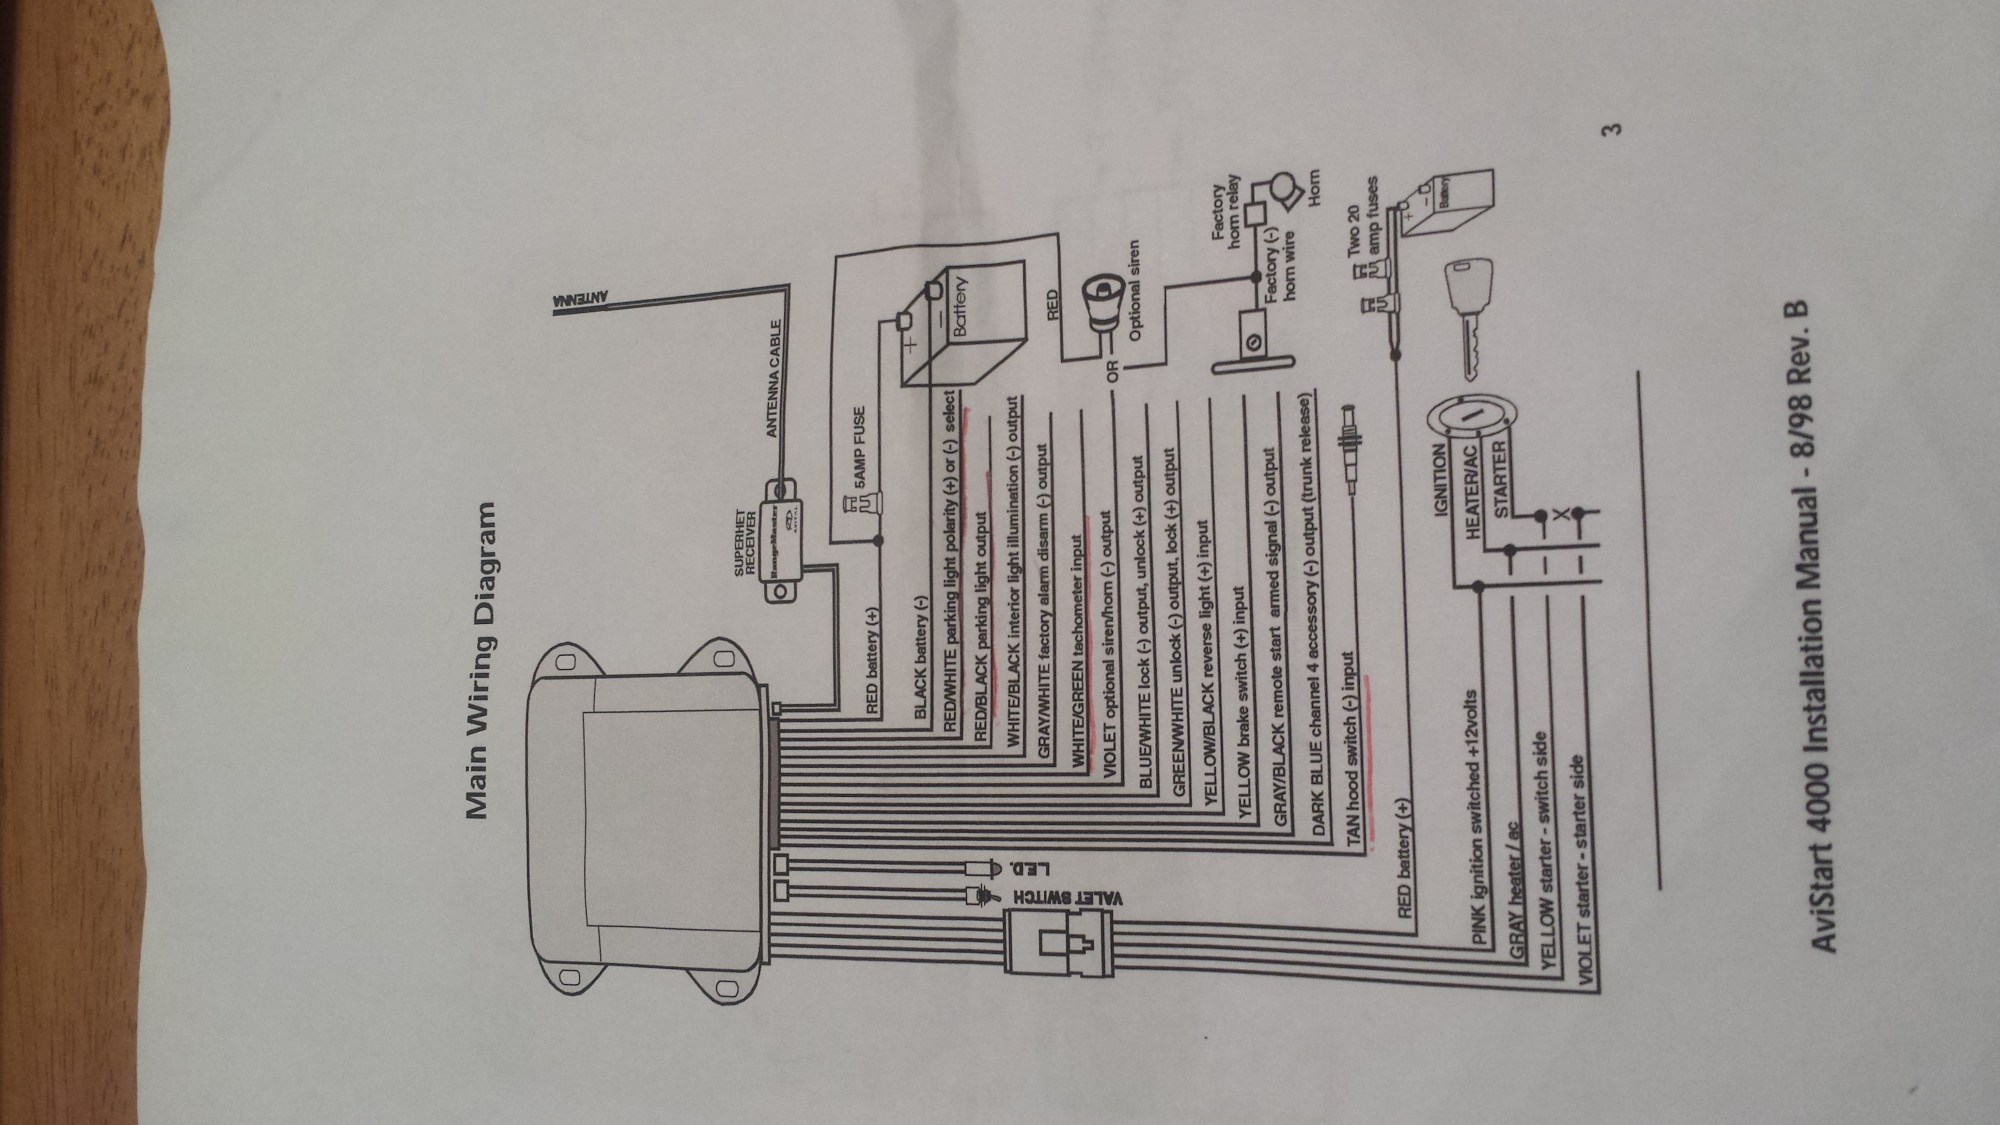 hight resolution of viper 300 alarm schematic wiring diagram list